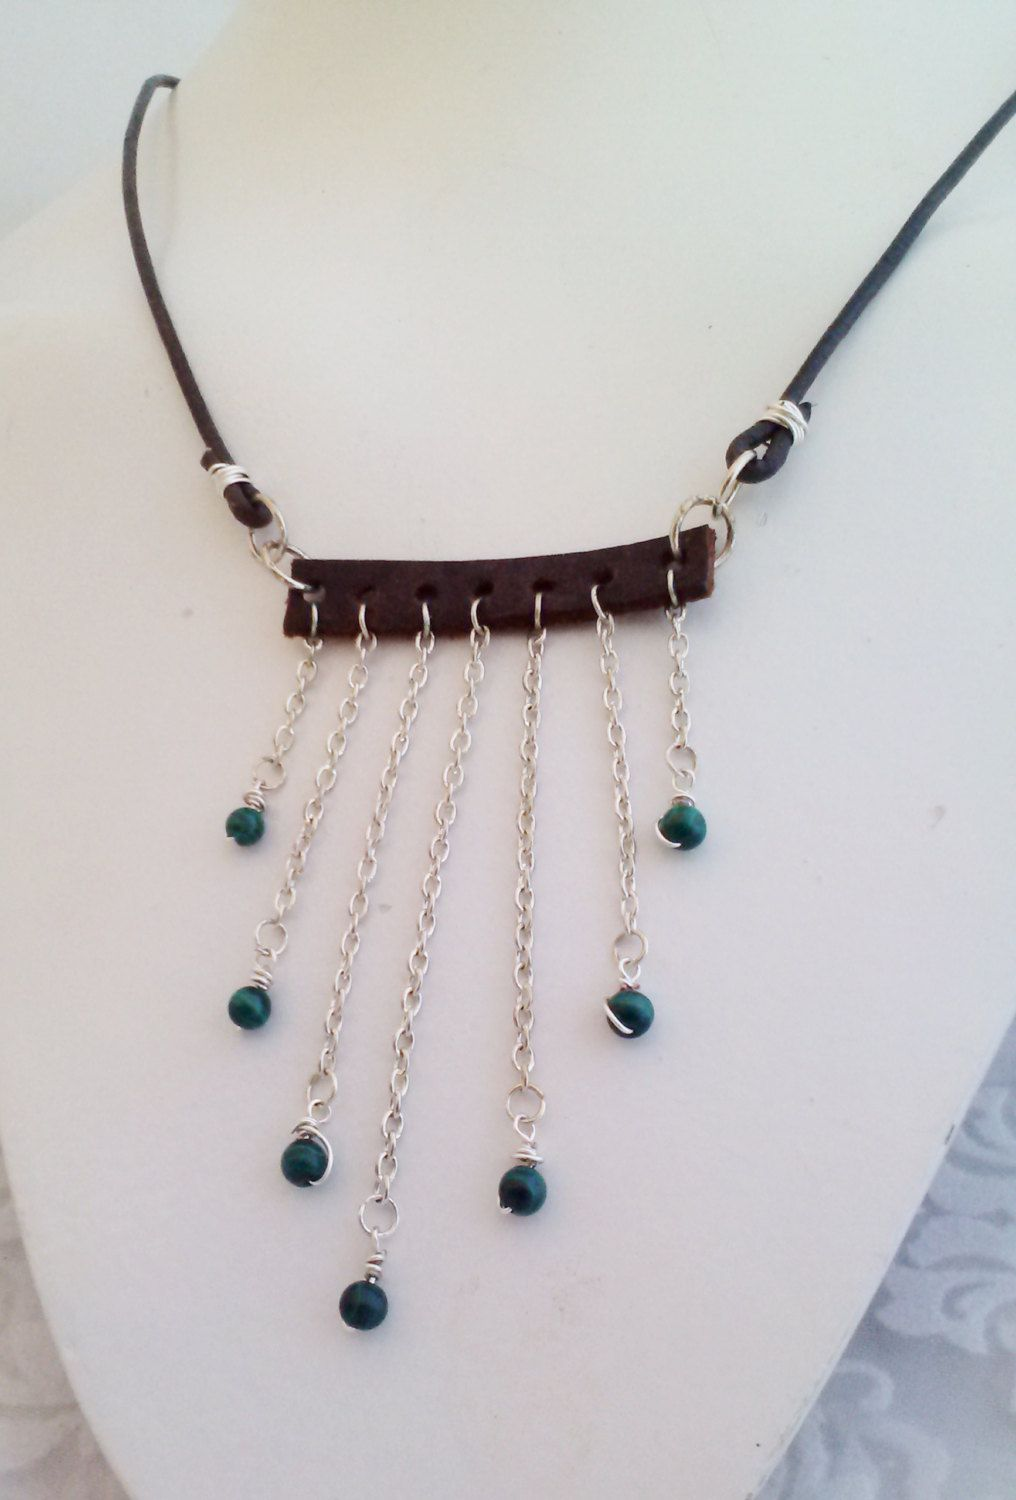 Malachite Bohemian Leather & Silver Bib Tassel Necklace - Wire Wrapped - Necklace Set - Boho Chic - pinned by pin4etsy.com